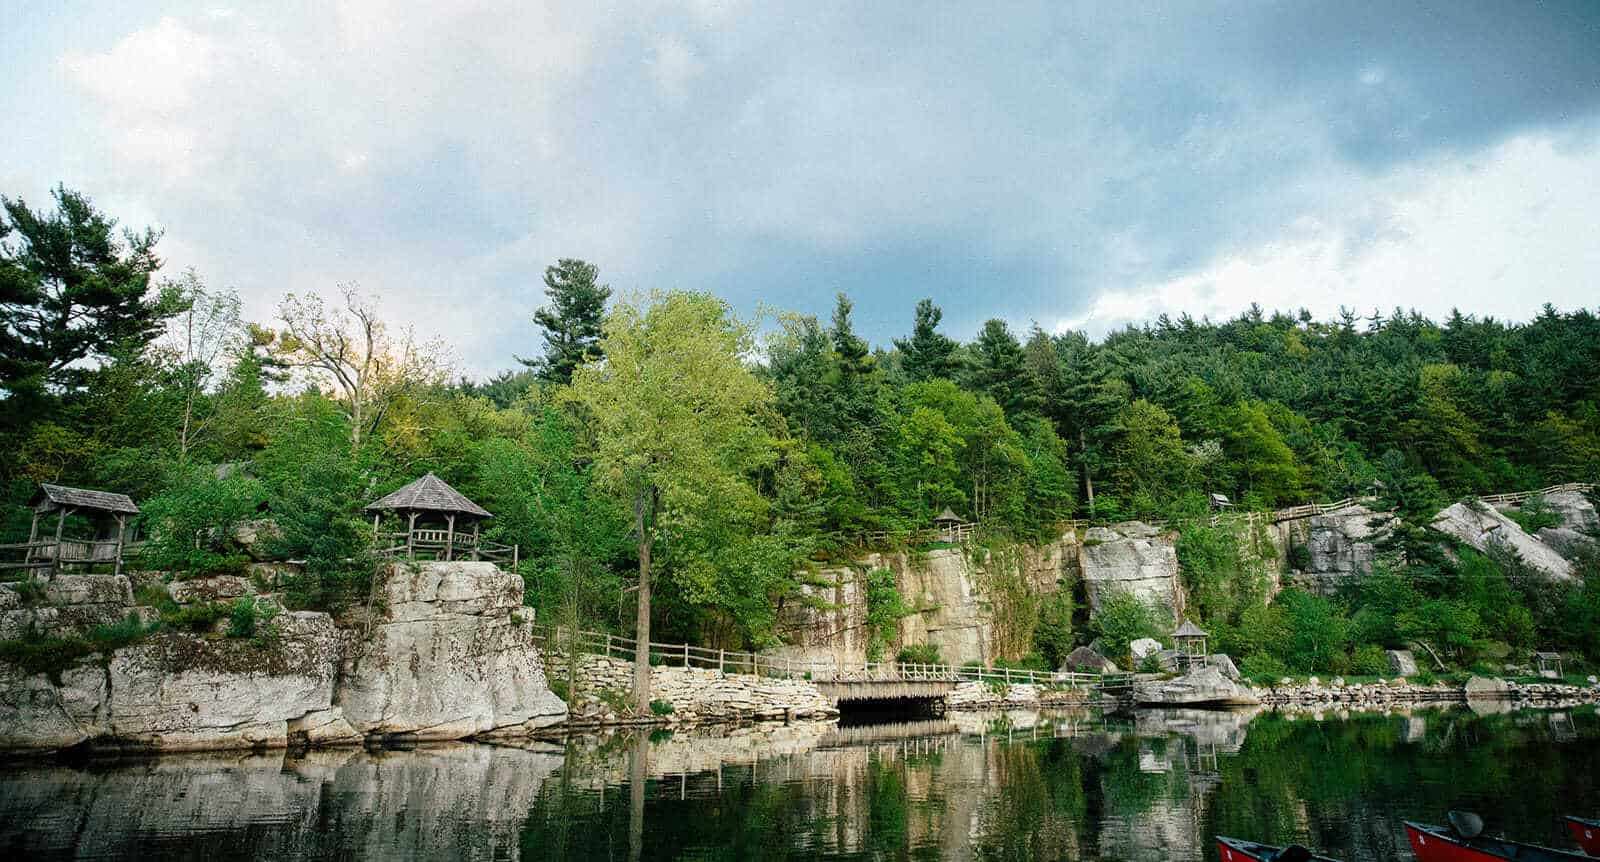 Reflections on Lake Mohonk